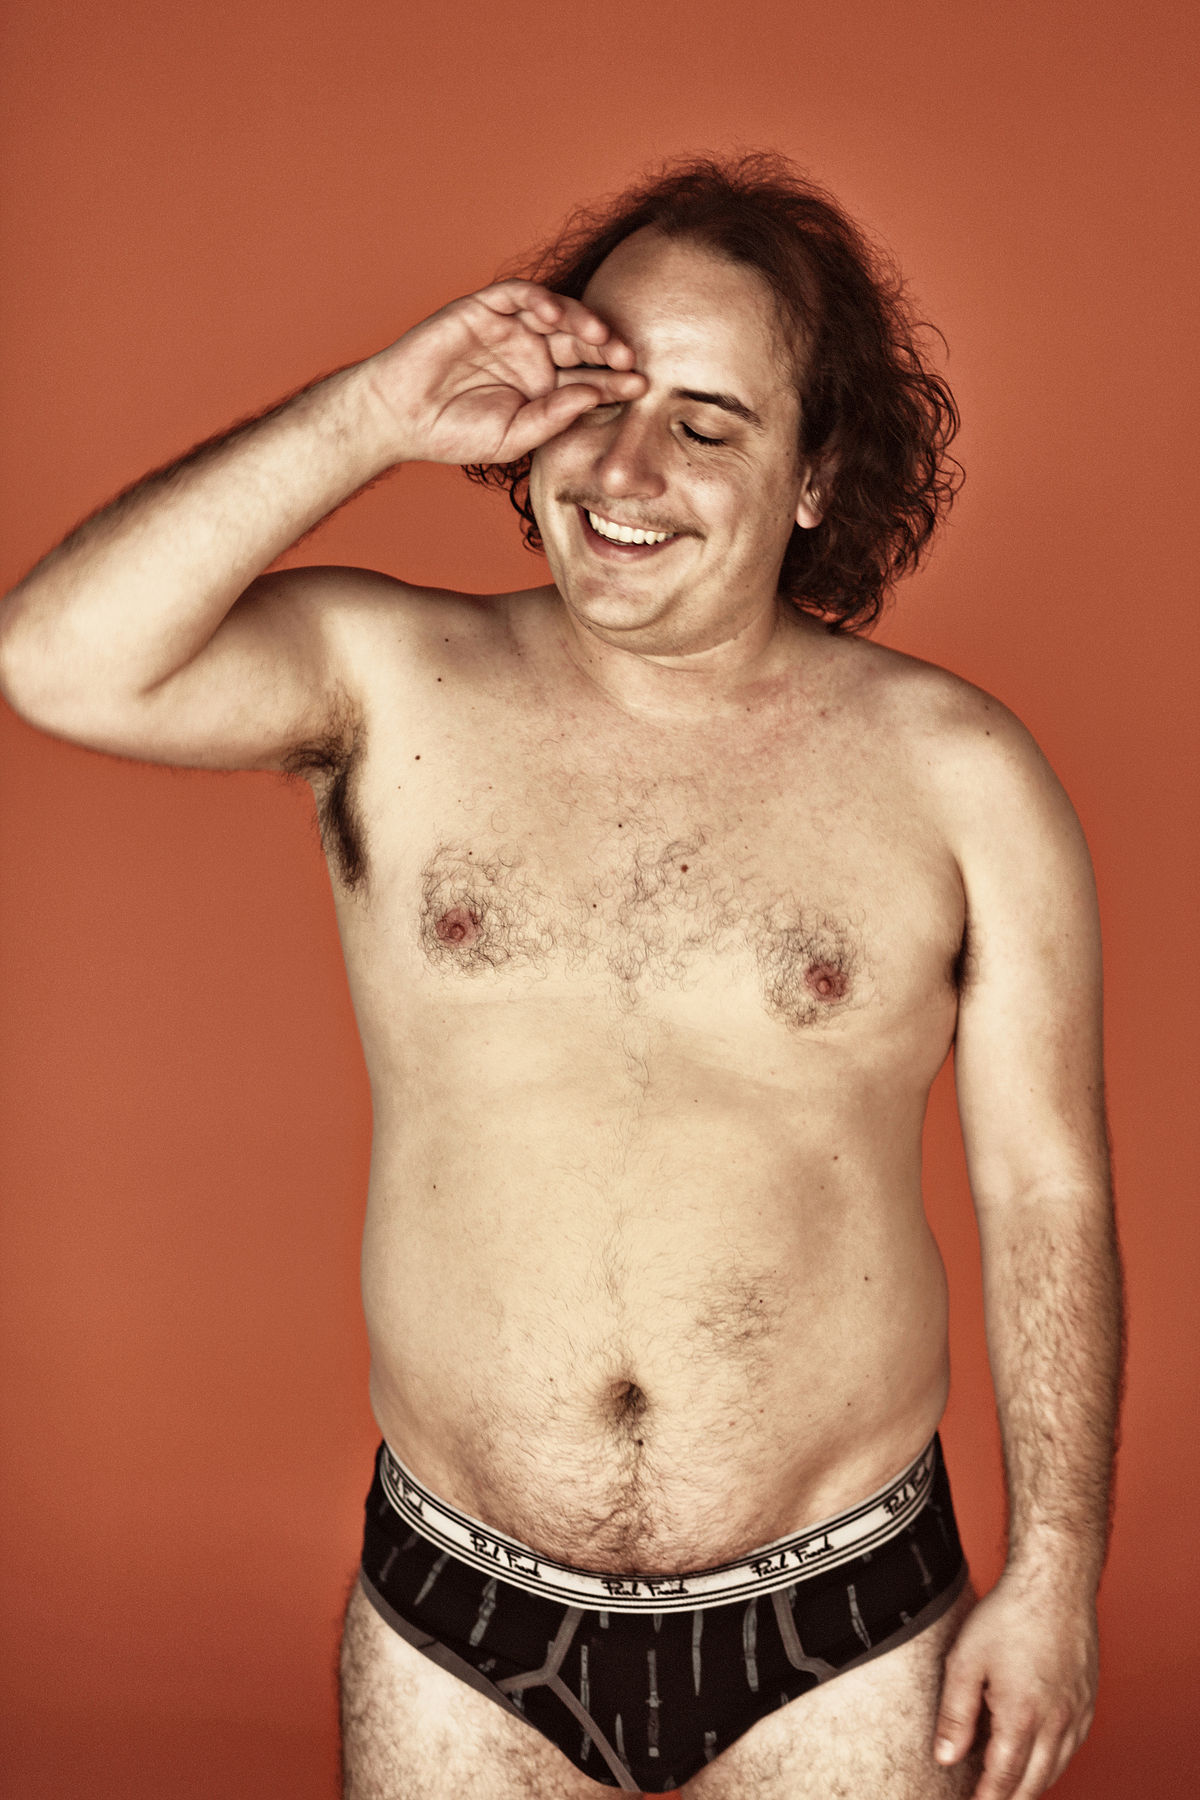 Ron de jeremy - 2 part 2